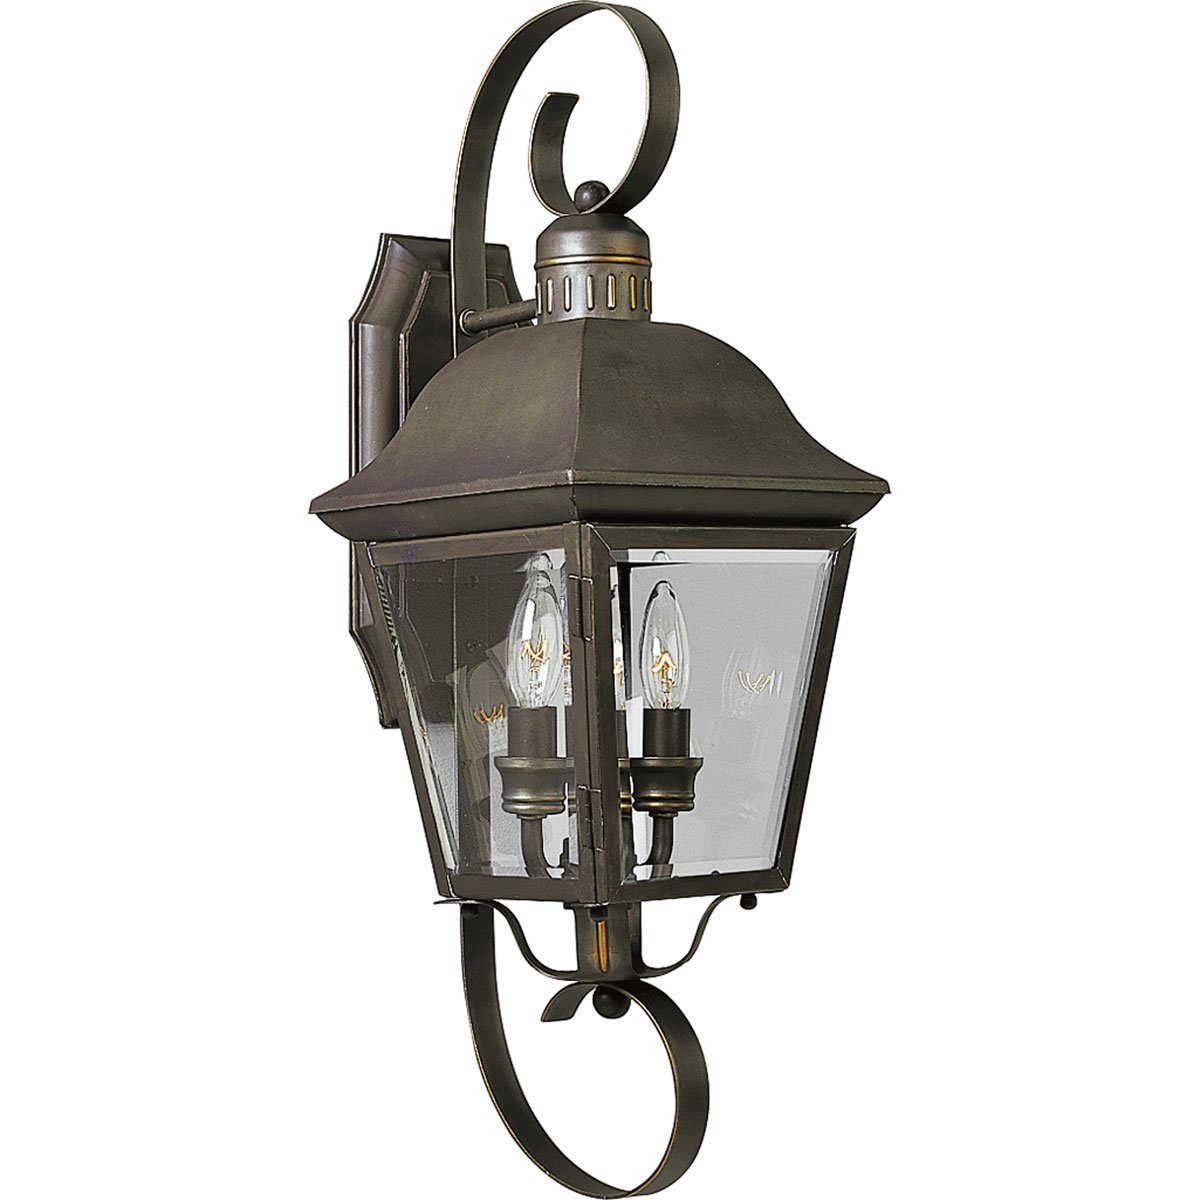 Progress Lighting P5688-20 2-Light Andover Medium Wall Lantern with Solid Brass Construction, Antique Bronze by Progress Lighting